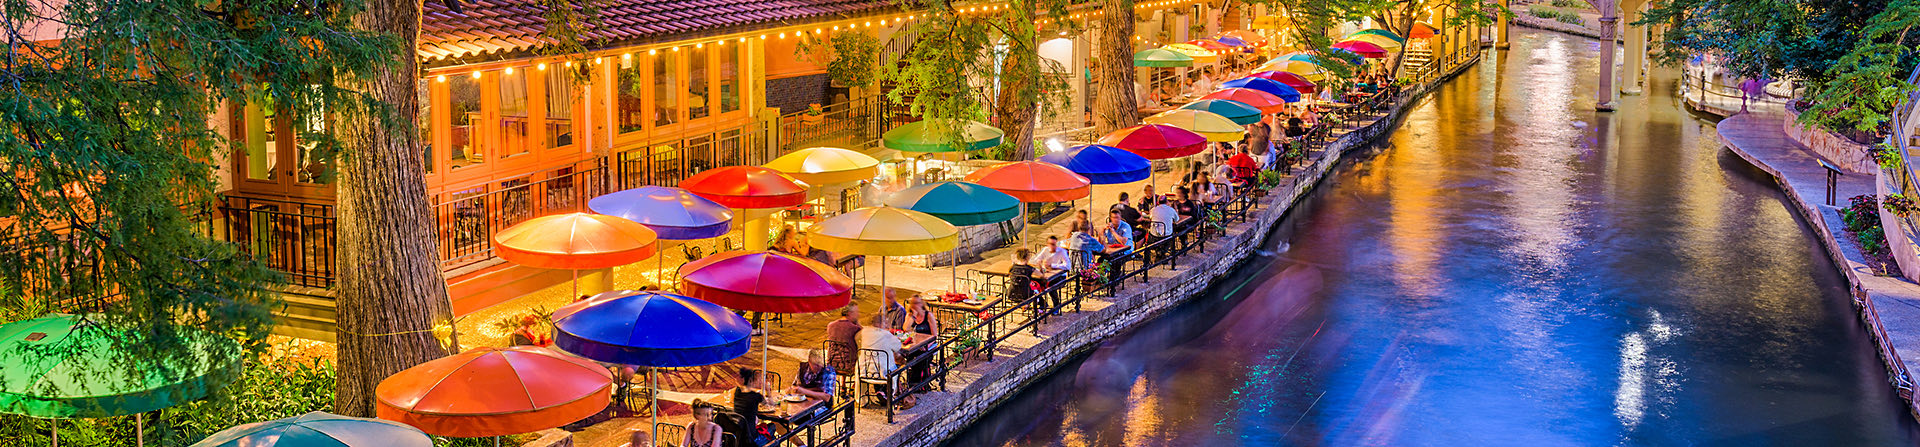 overhead view of the San Antonio riverwalk in the evening with the view of colorful umbrellas